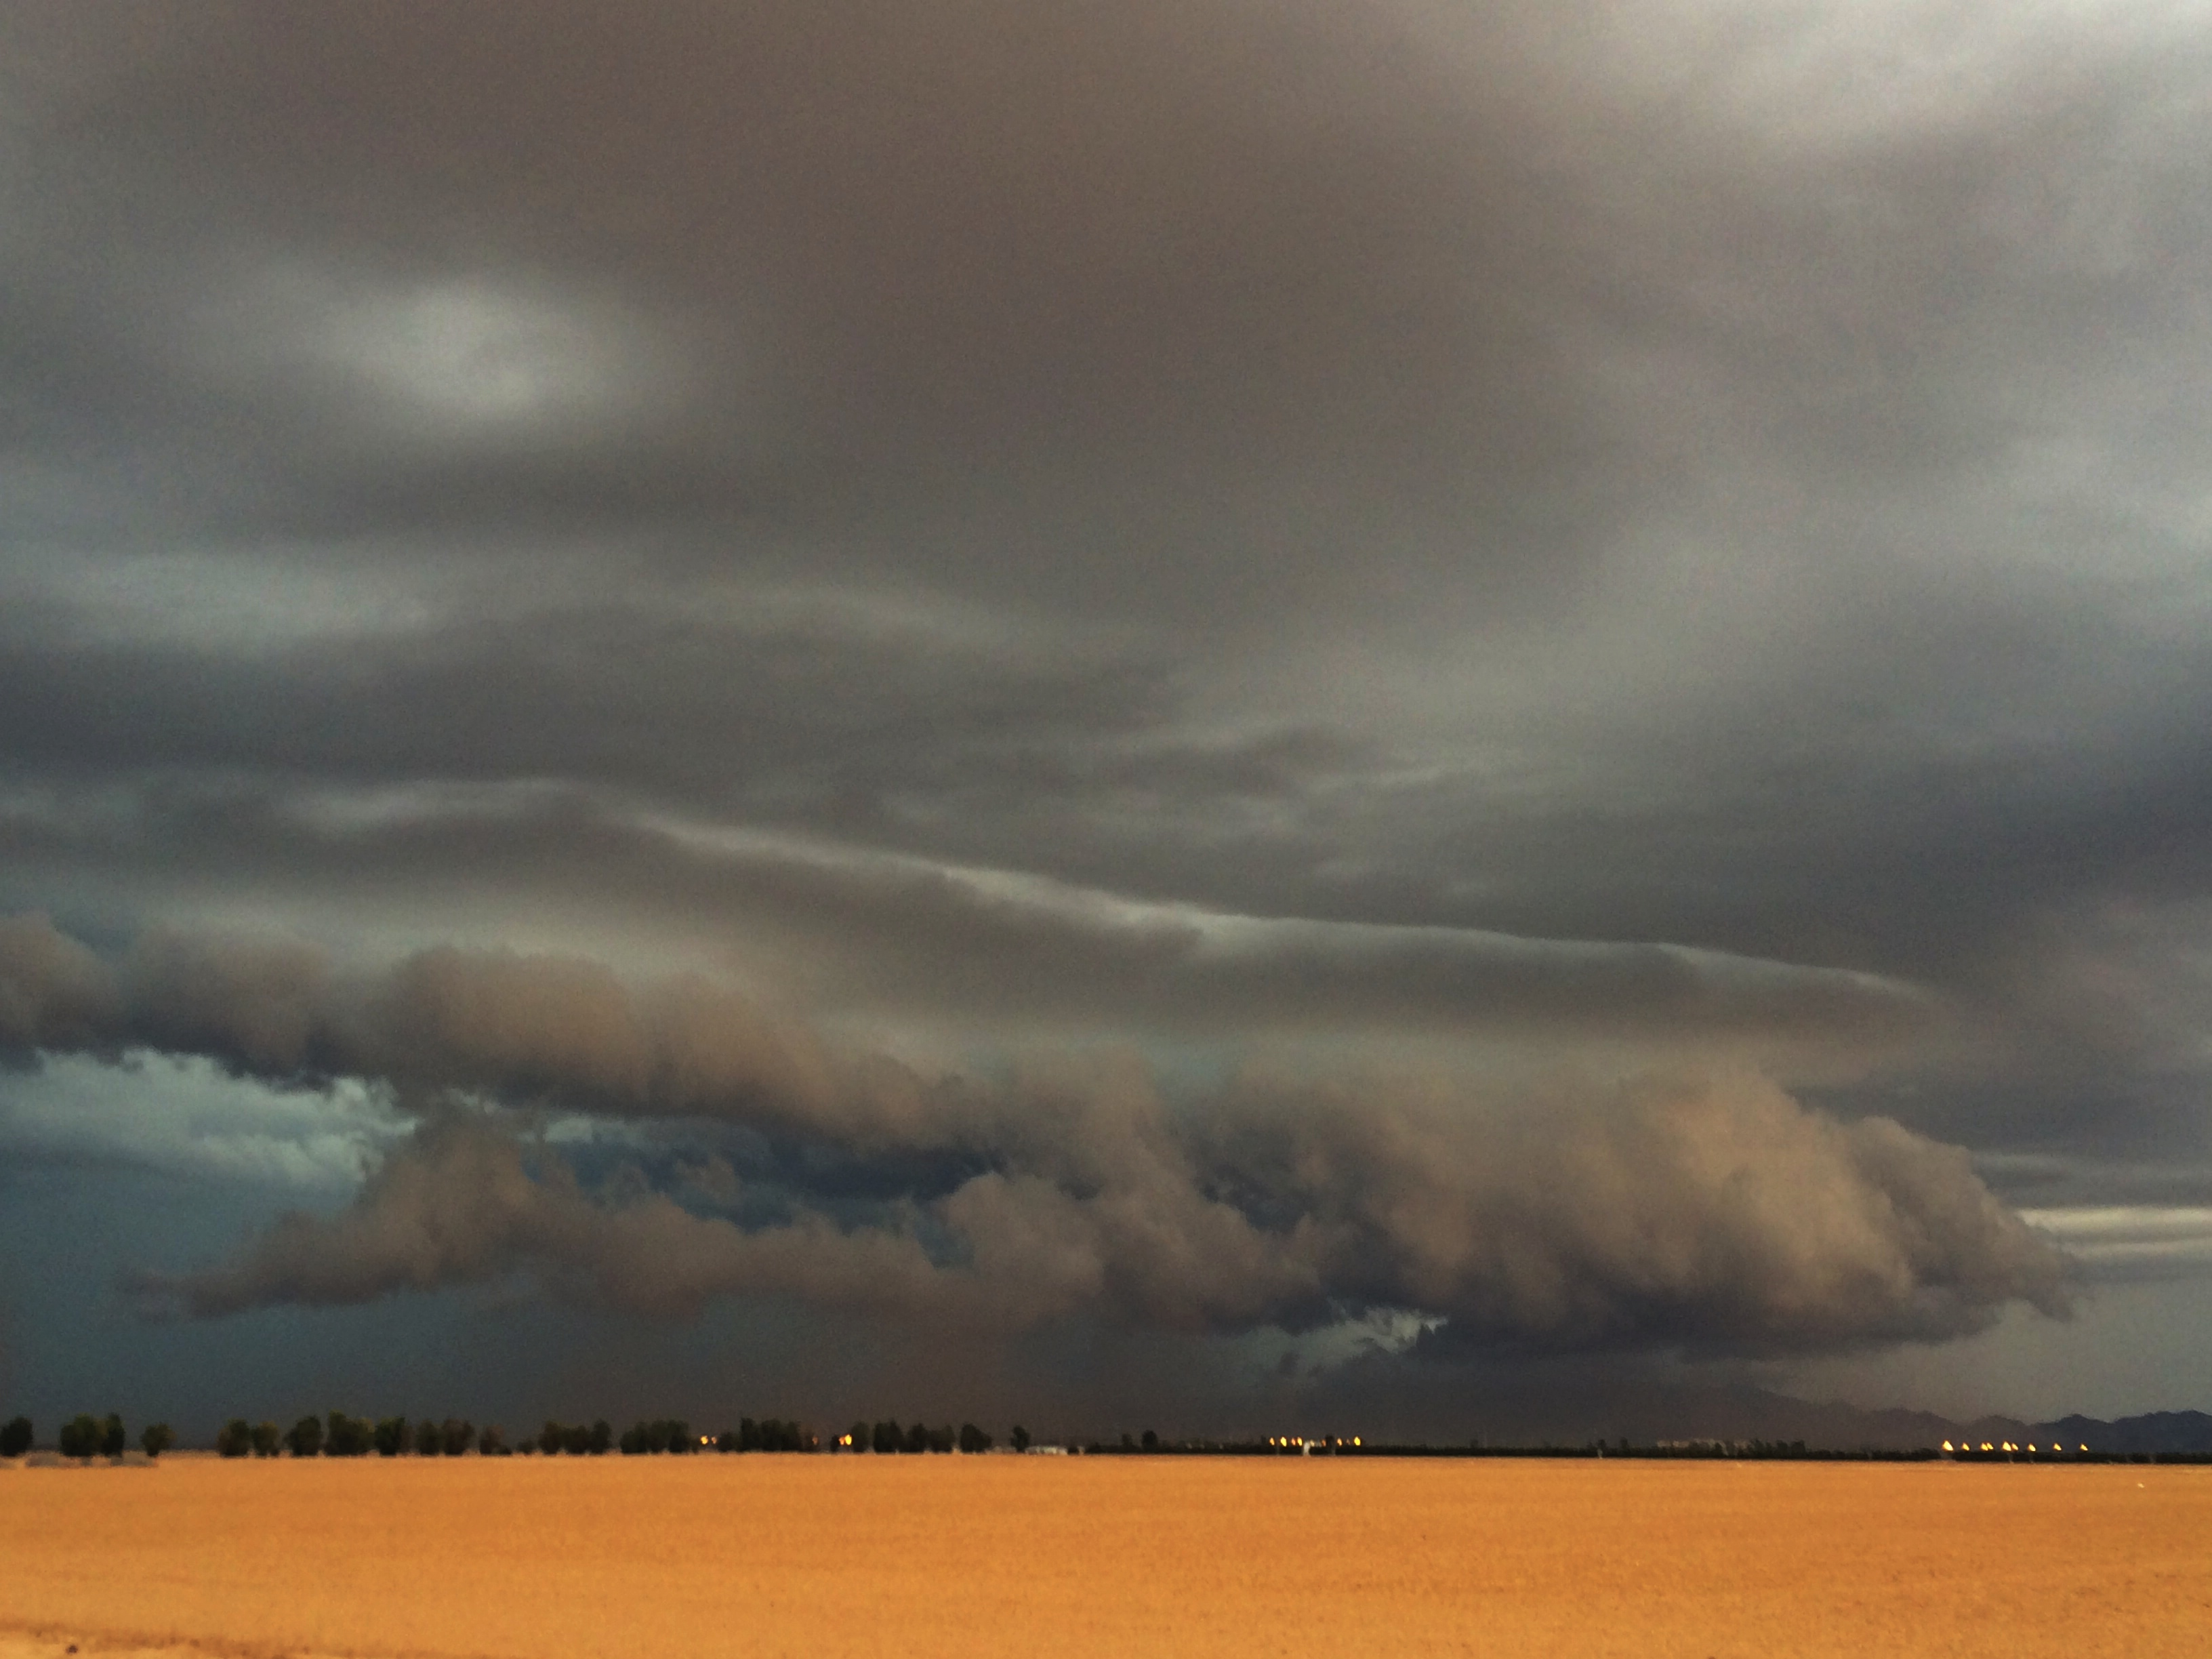 Shelf cloud (Courtesy of Bryan Snider)